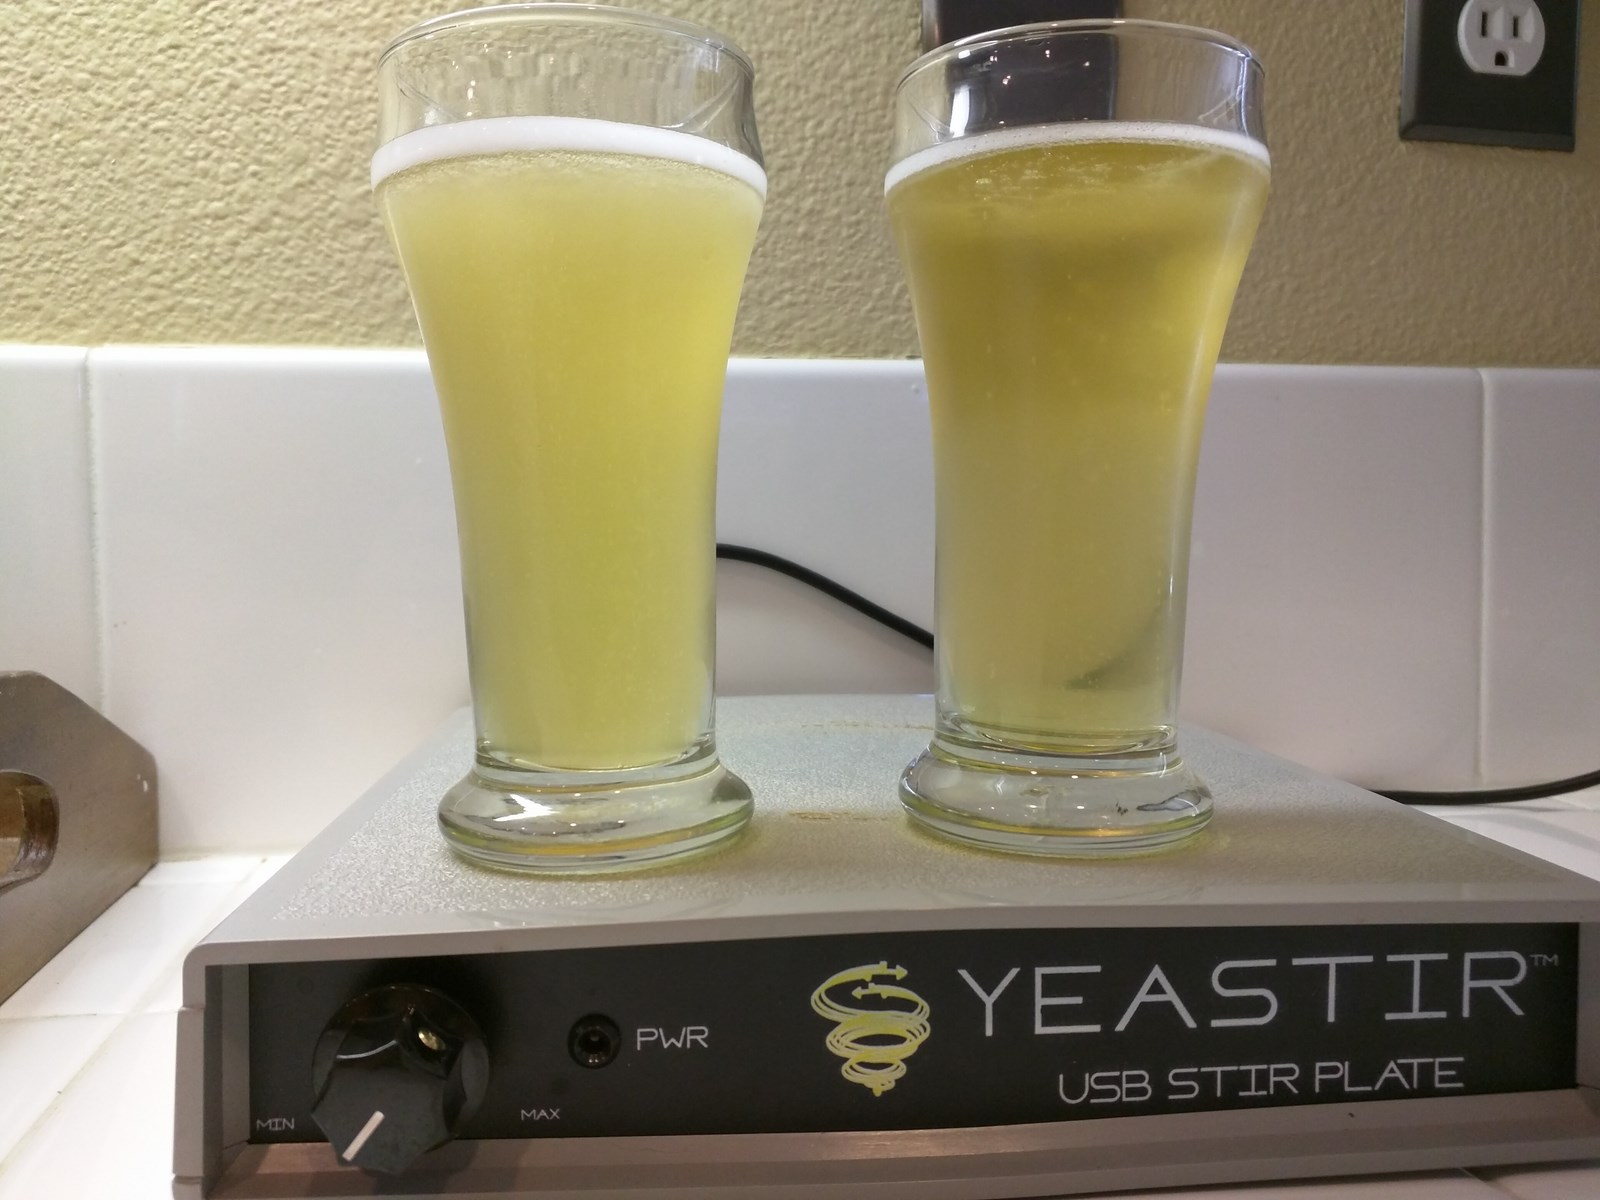 Yeast Comparison White Labs Wlp029 Vs Wyeast Wy2565 Xbmt Results Keezer Temp Controller Using The Stc1000 Mostly Harmless Brlosophy